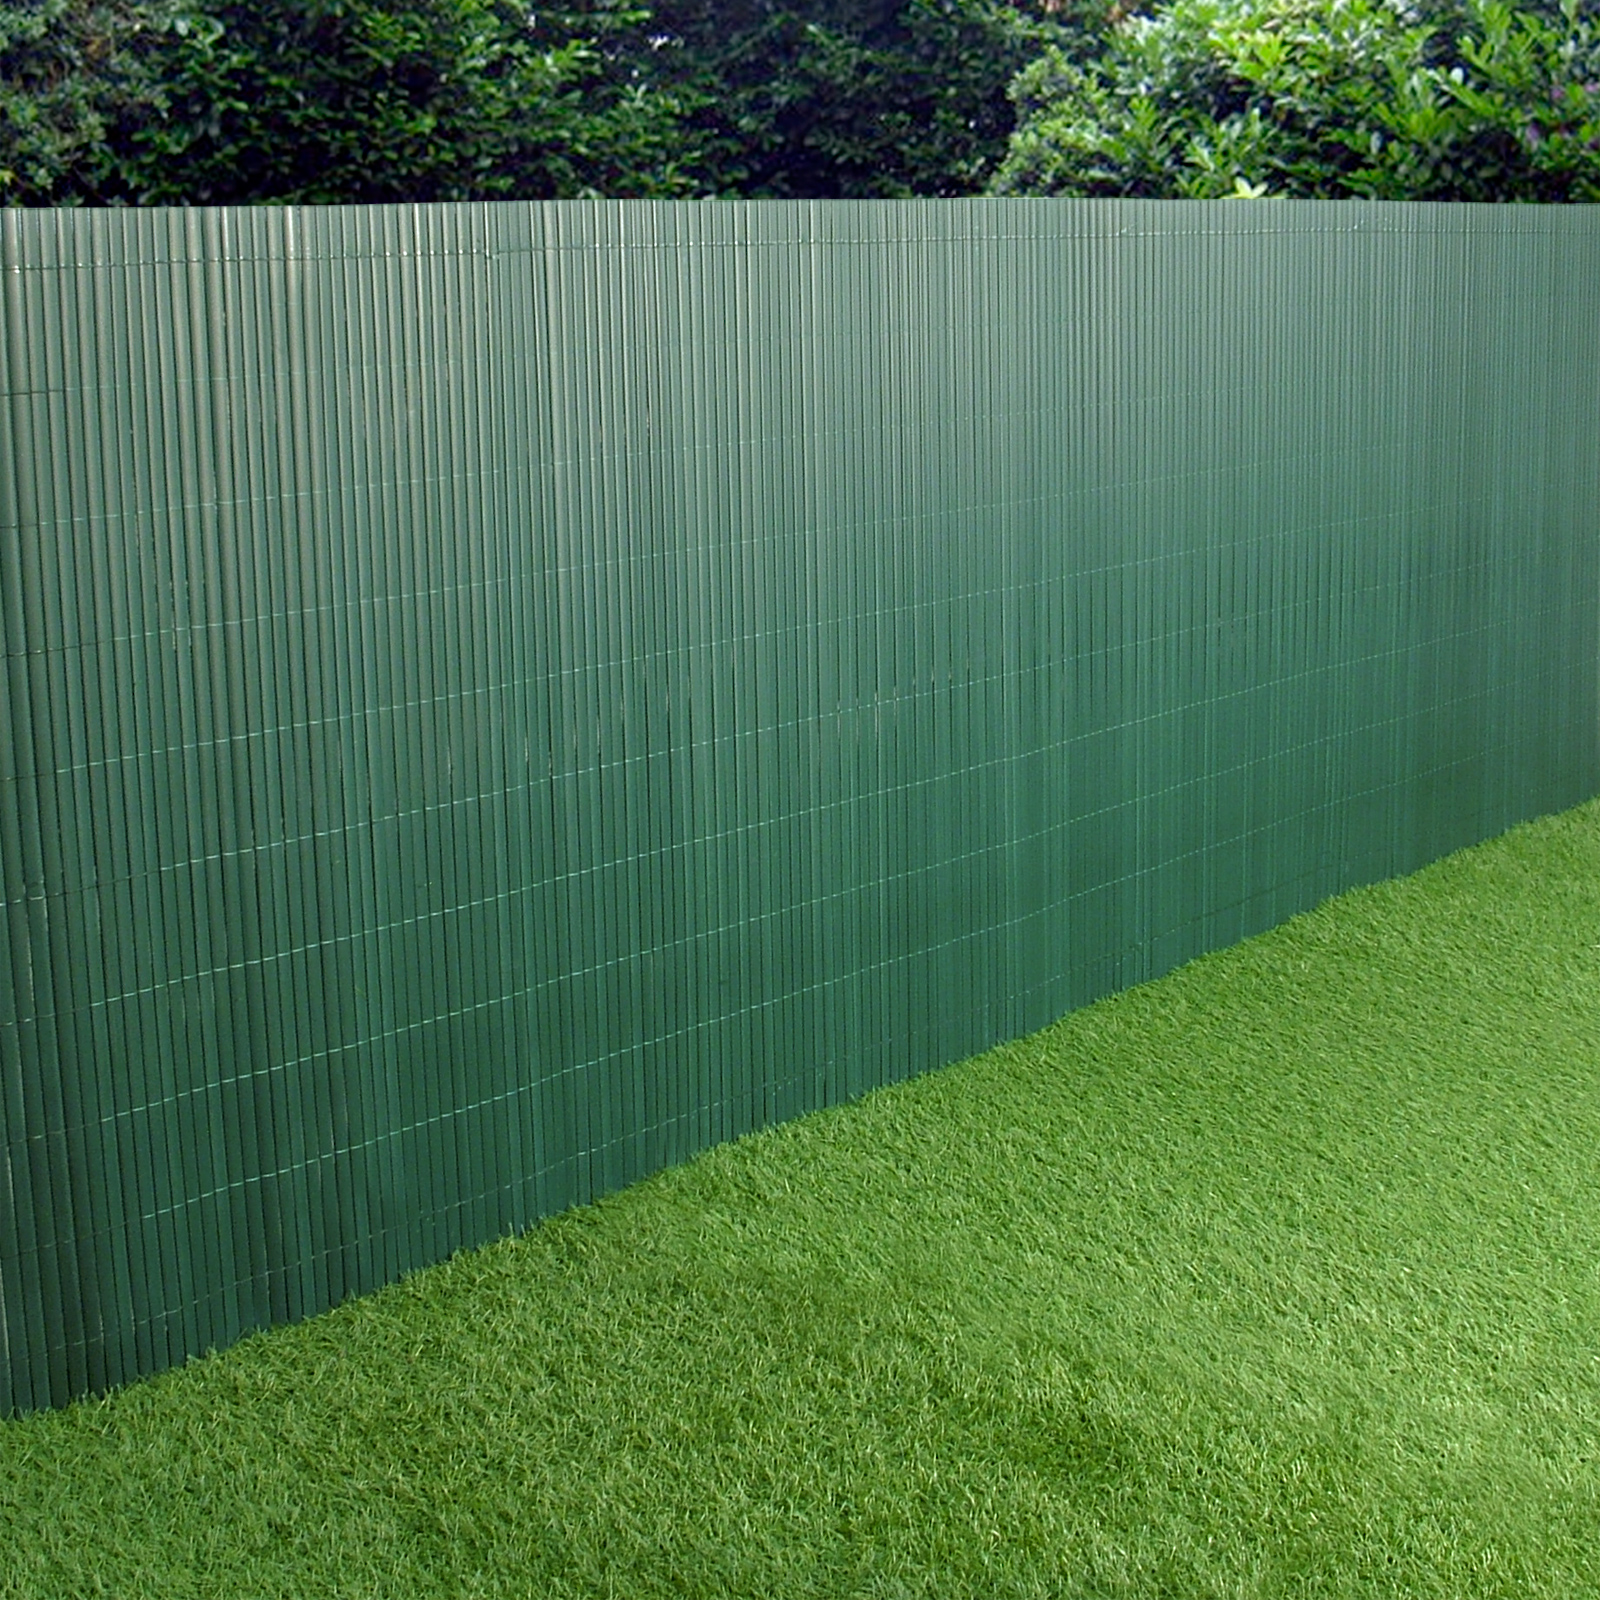 pvc garden fence plastic panel screen double faced green 3m long 1m tall. Black Bedroom Furniture Sets. Home Design Ideas